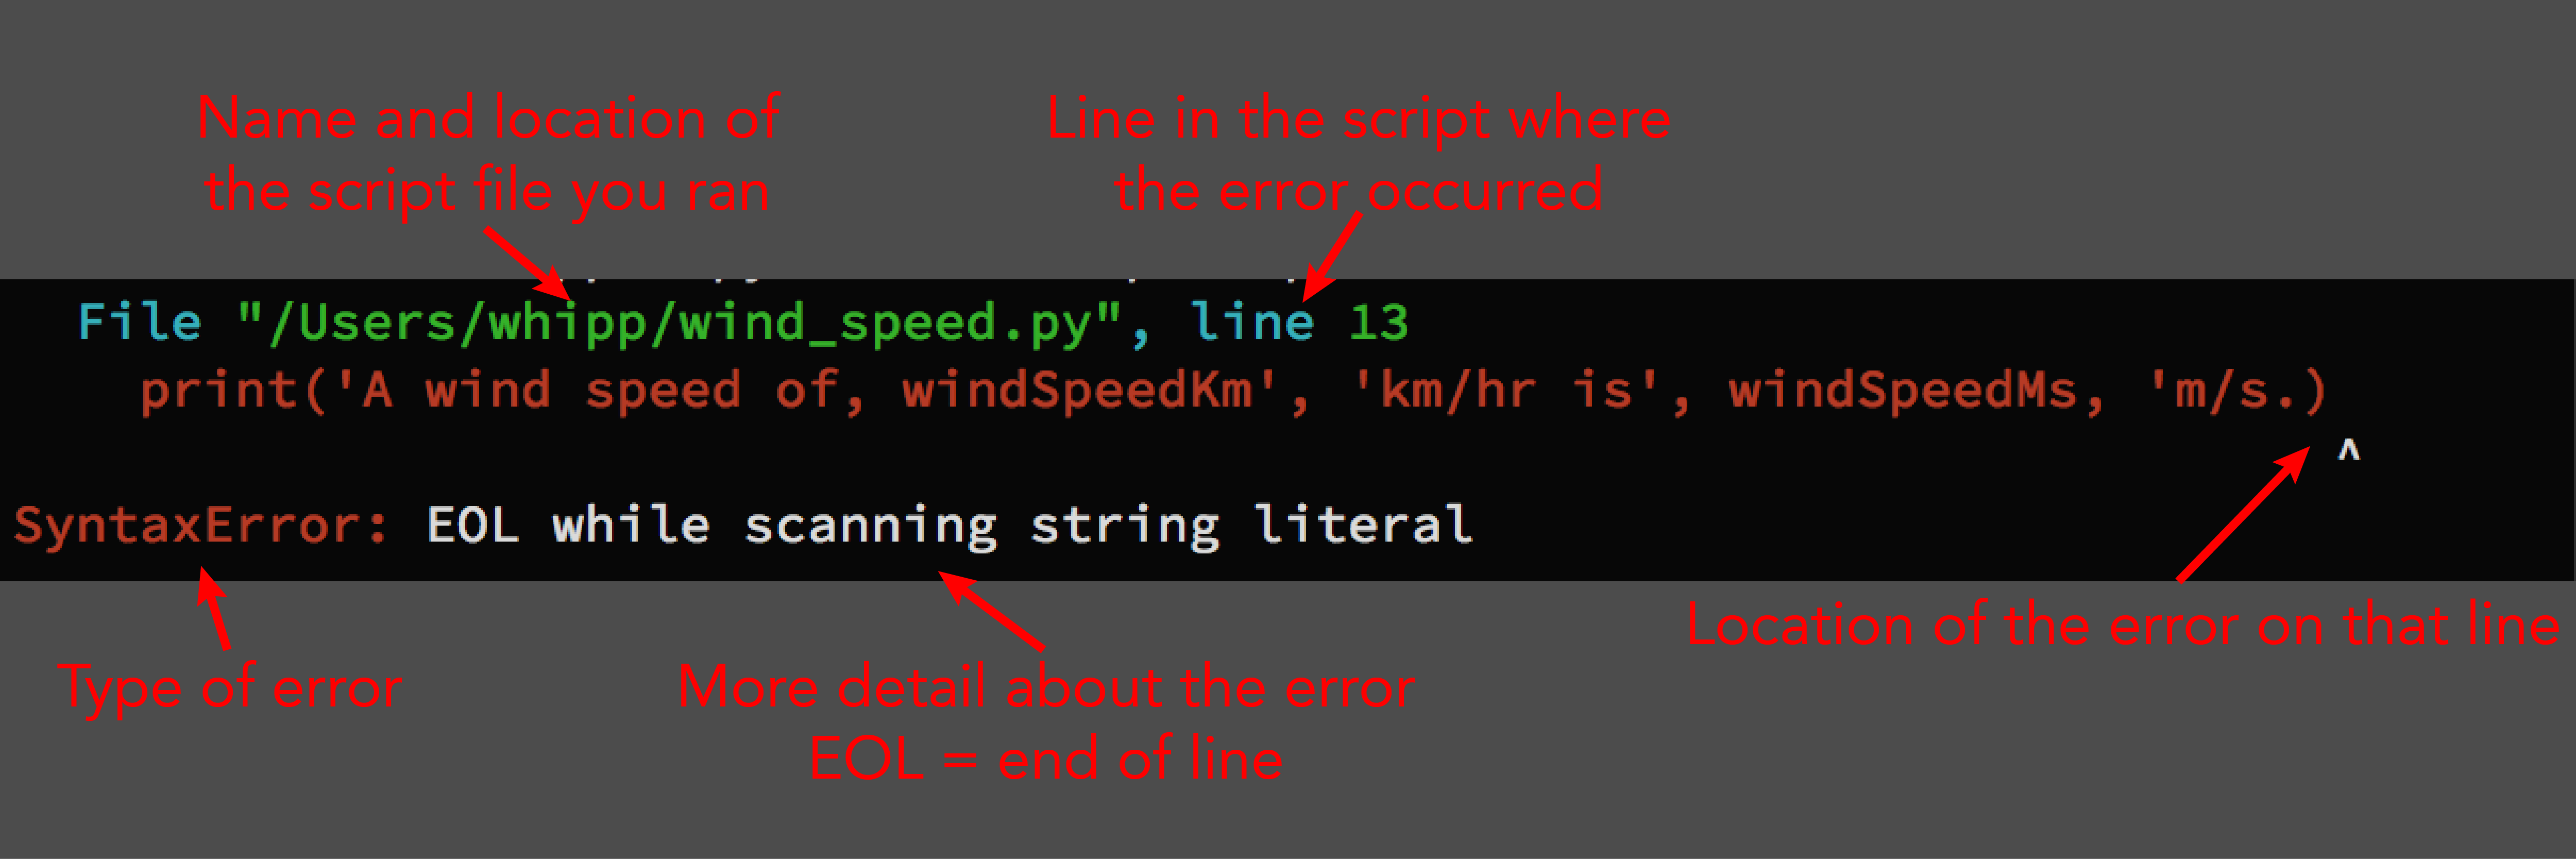 A SyntaxError, annotated